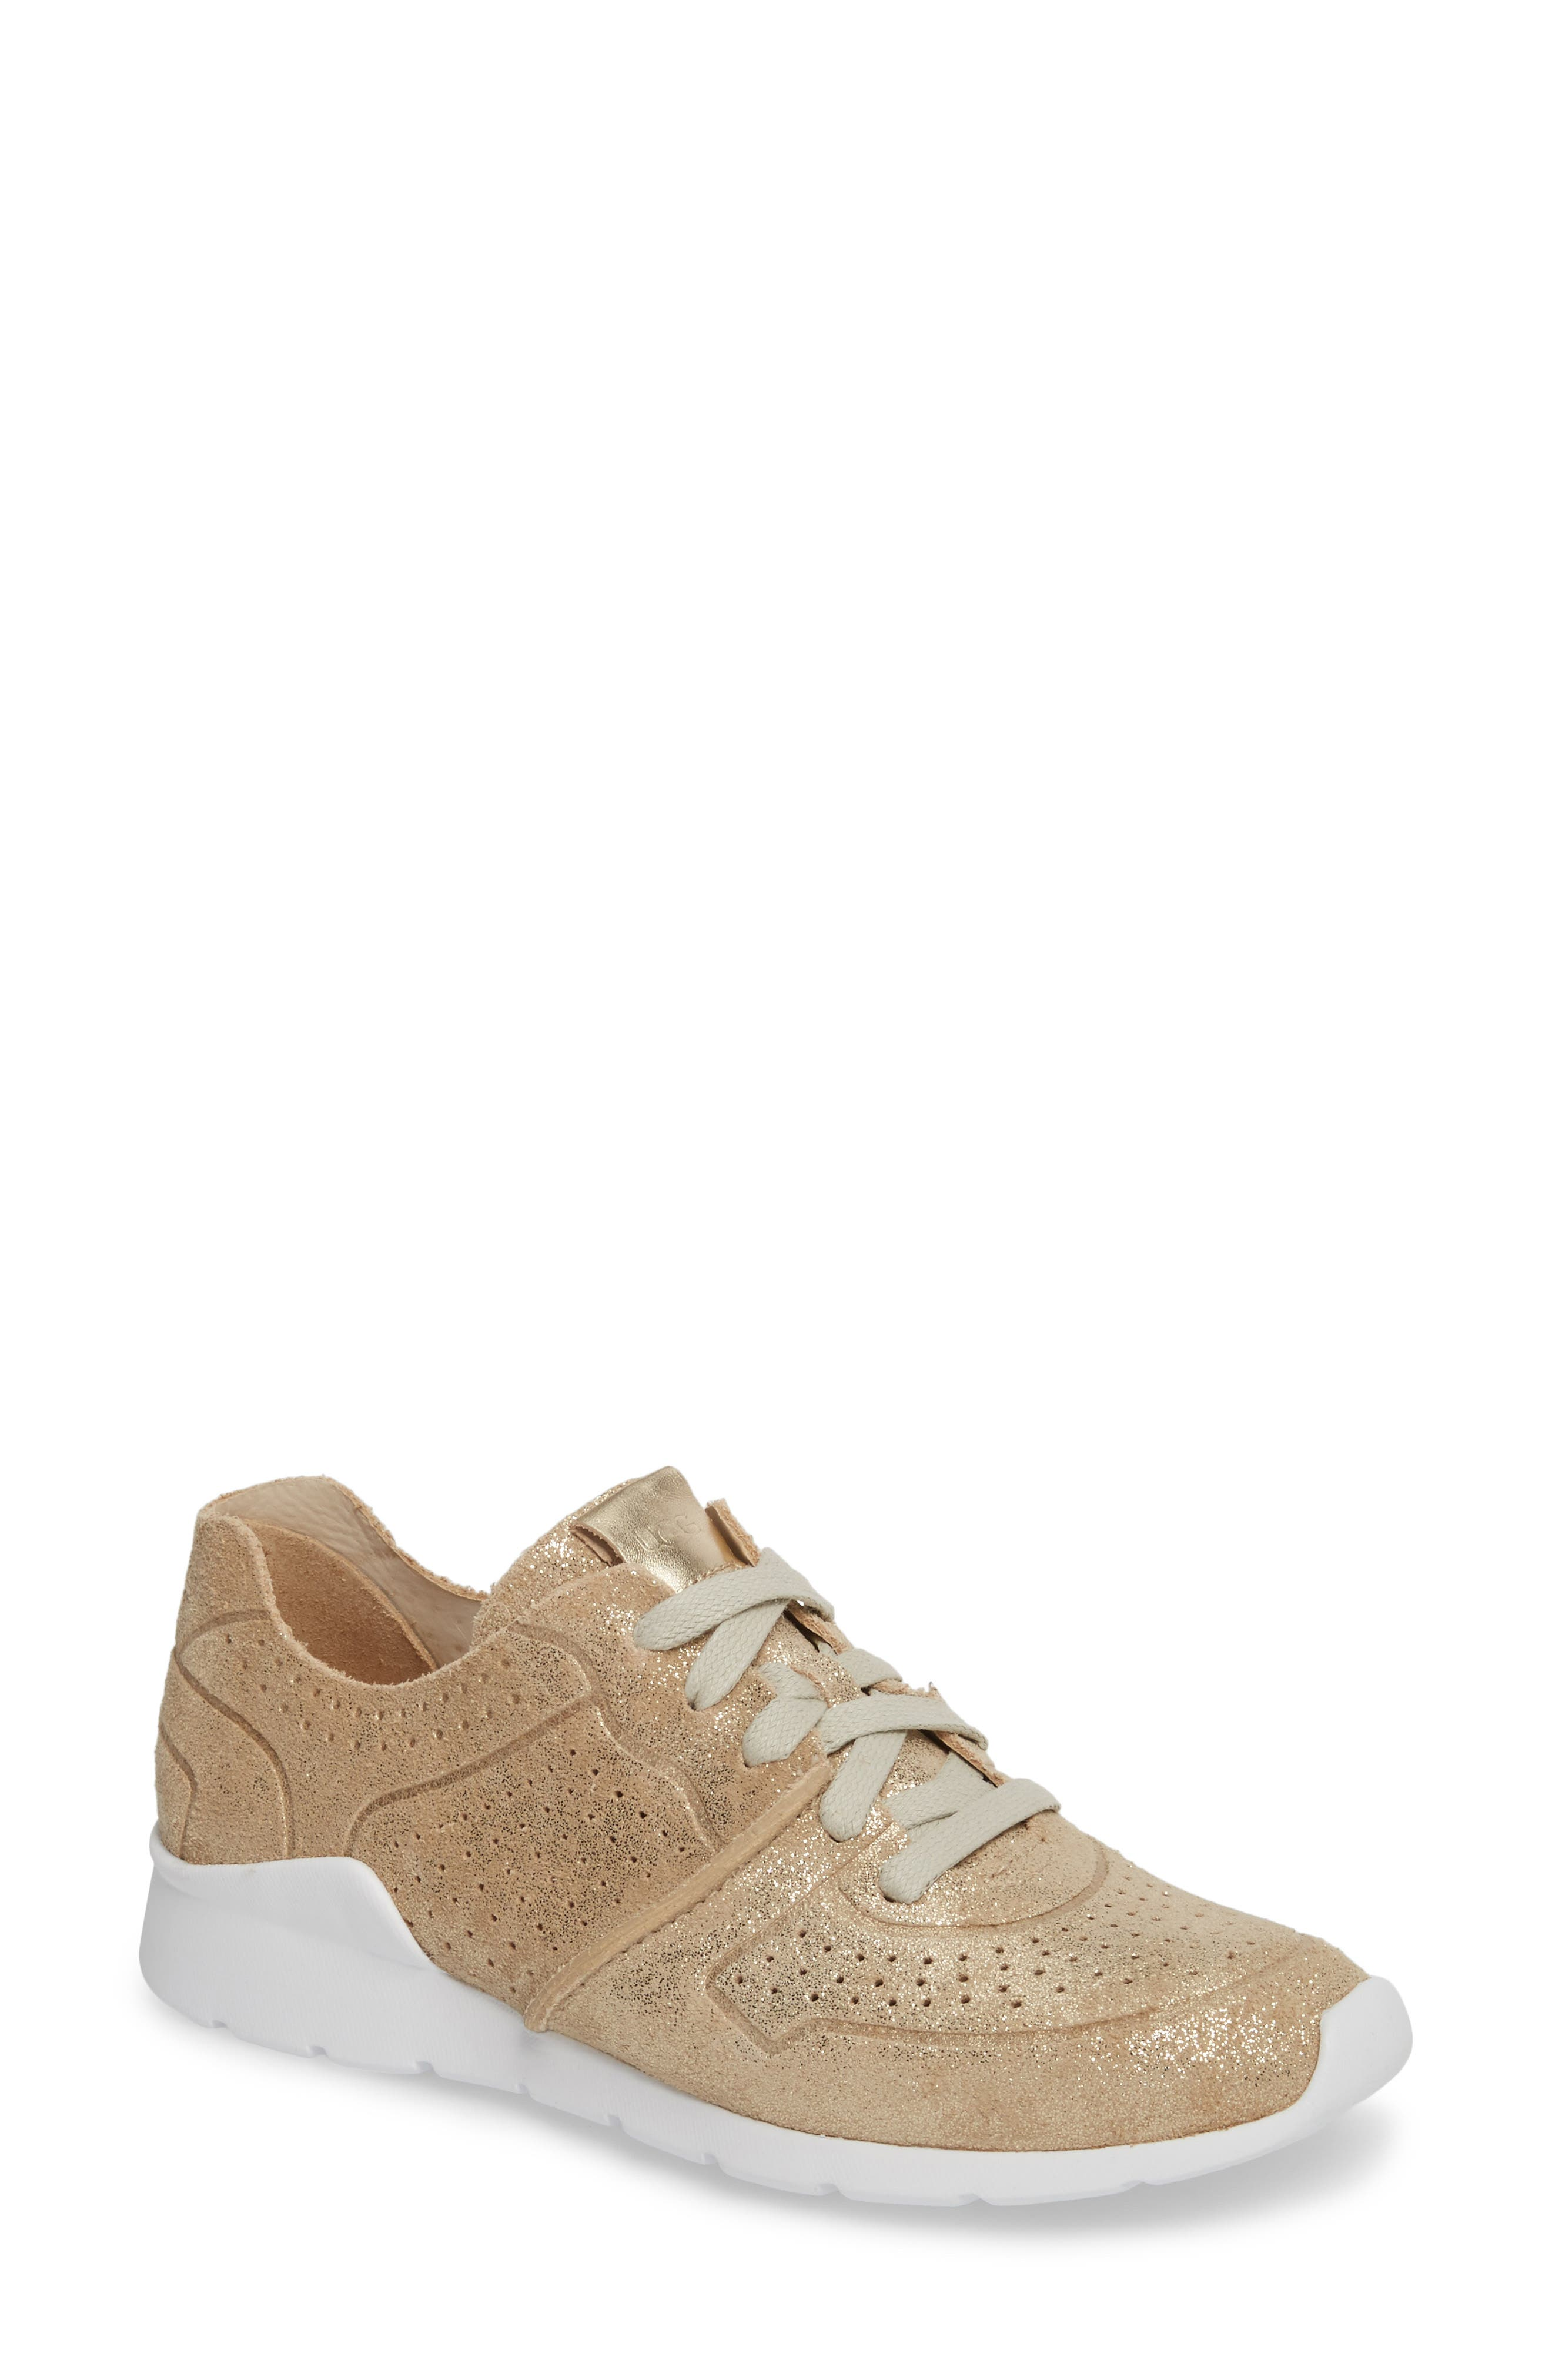 Tye Stardust Sneaker,                             Main thumbnail 1, color,                             GOLD LEATHER